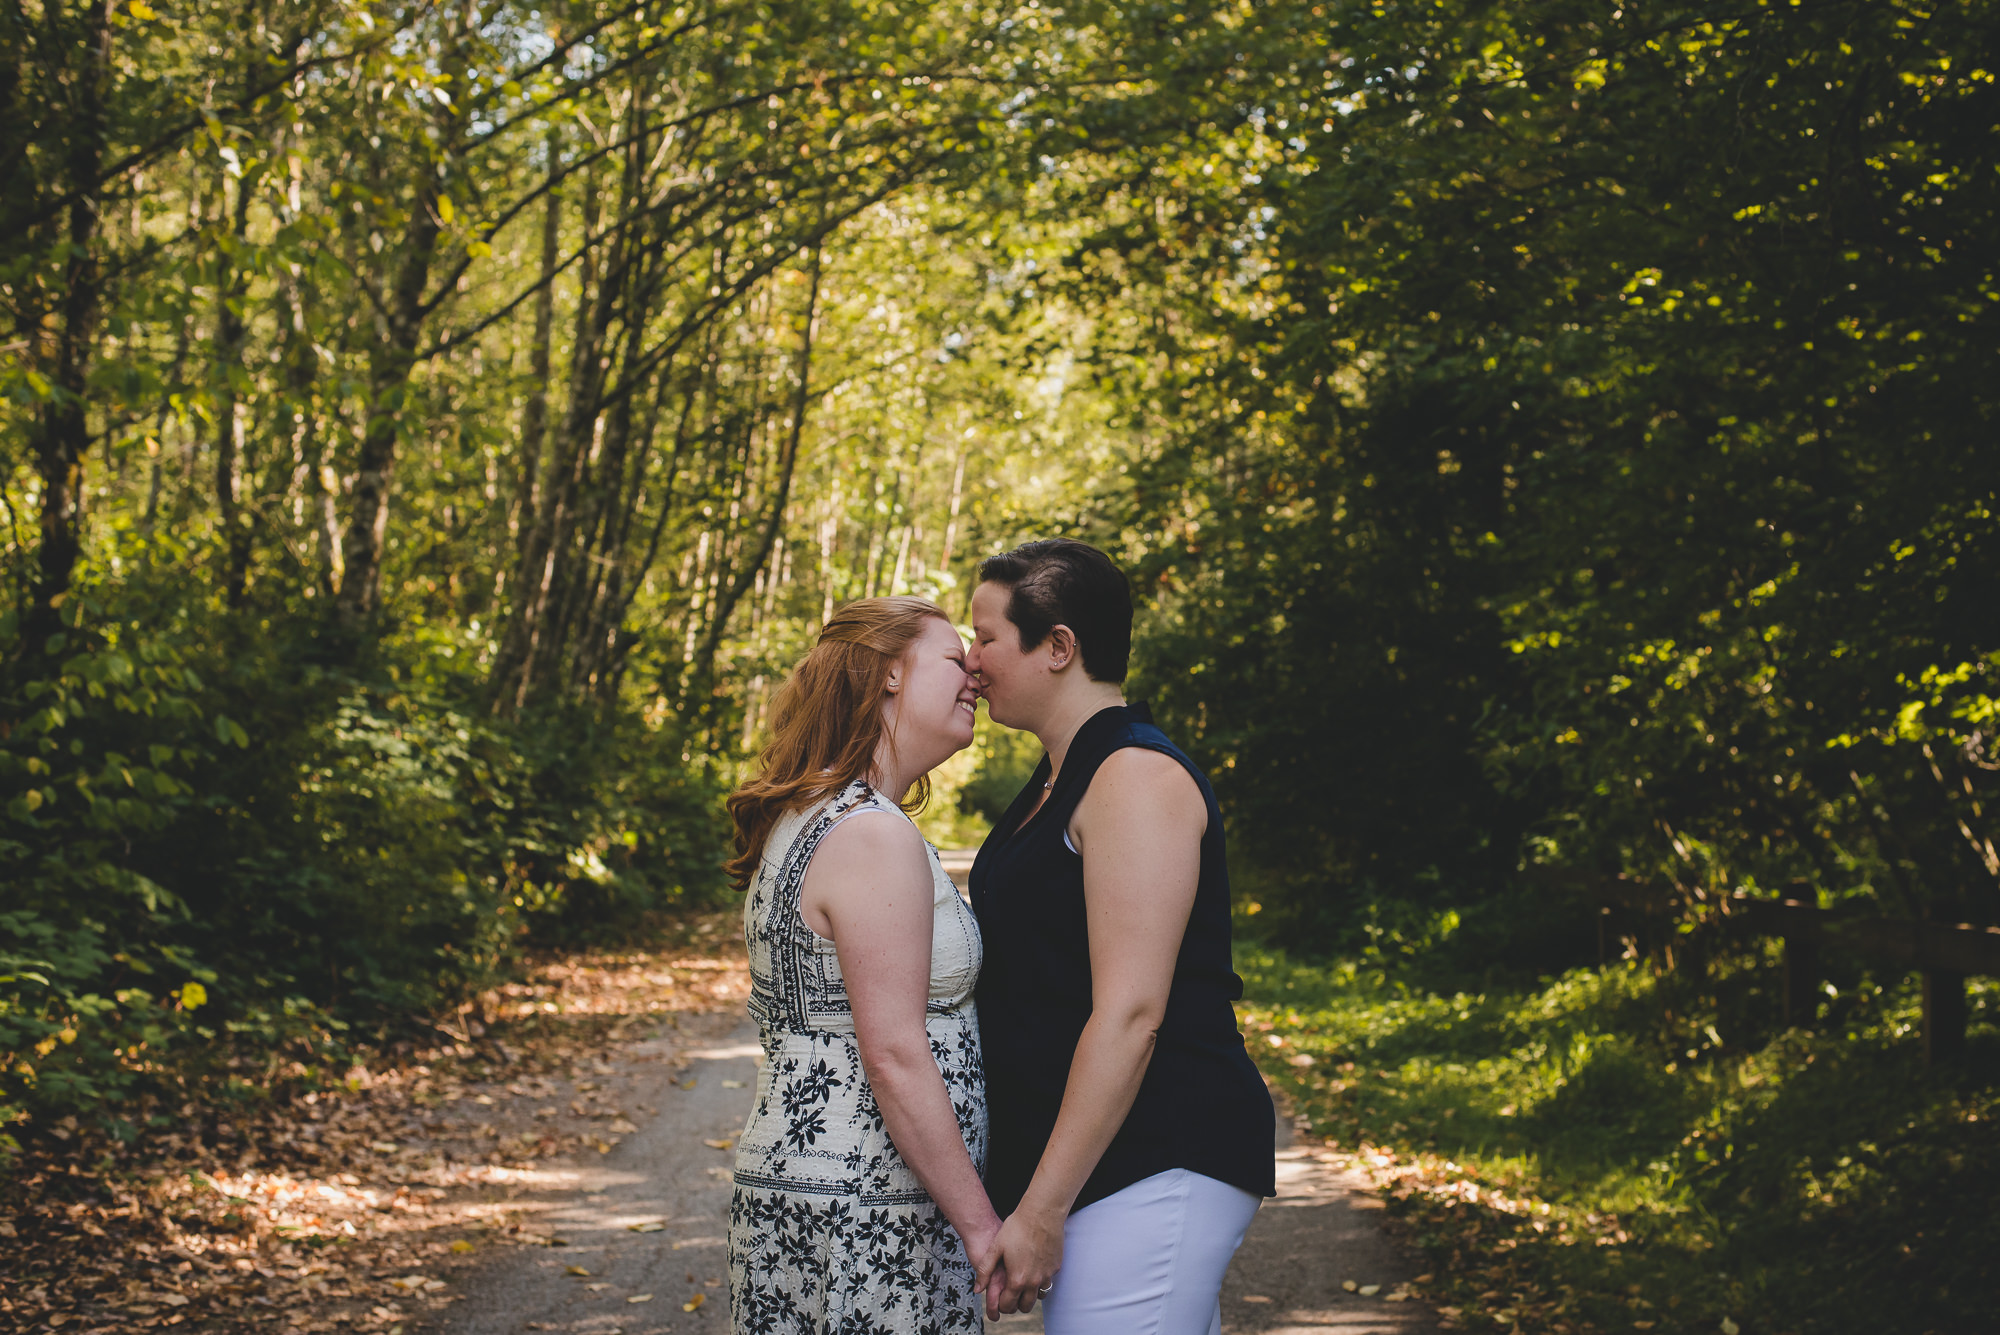 Bear Creek Park Elopement | Surrey LGBTQ Elopement Photographer